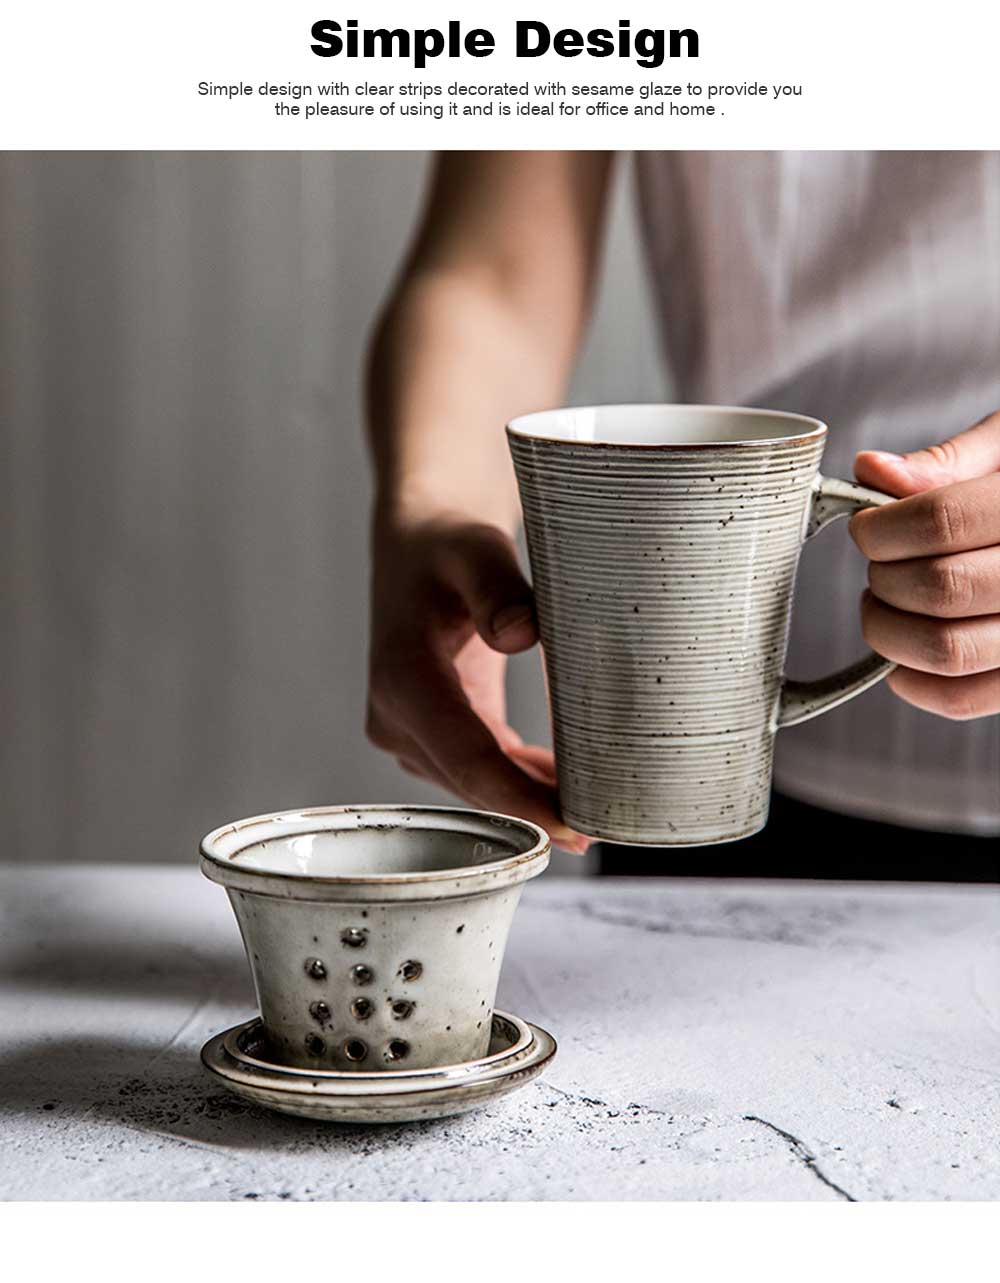 Ceramic Mug Cup with Filter Steepe Ideal for Office, Home, Glazed Mug Cup with Lid for Tea, Coffee, Porcelain Water Mug Cup 330ml 7